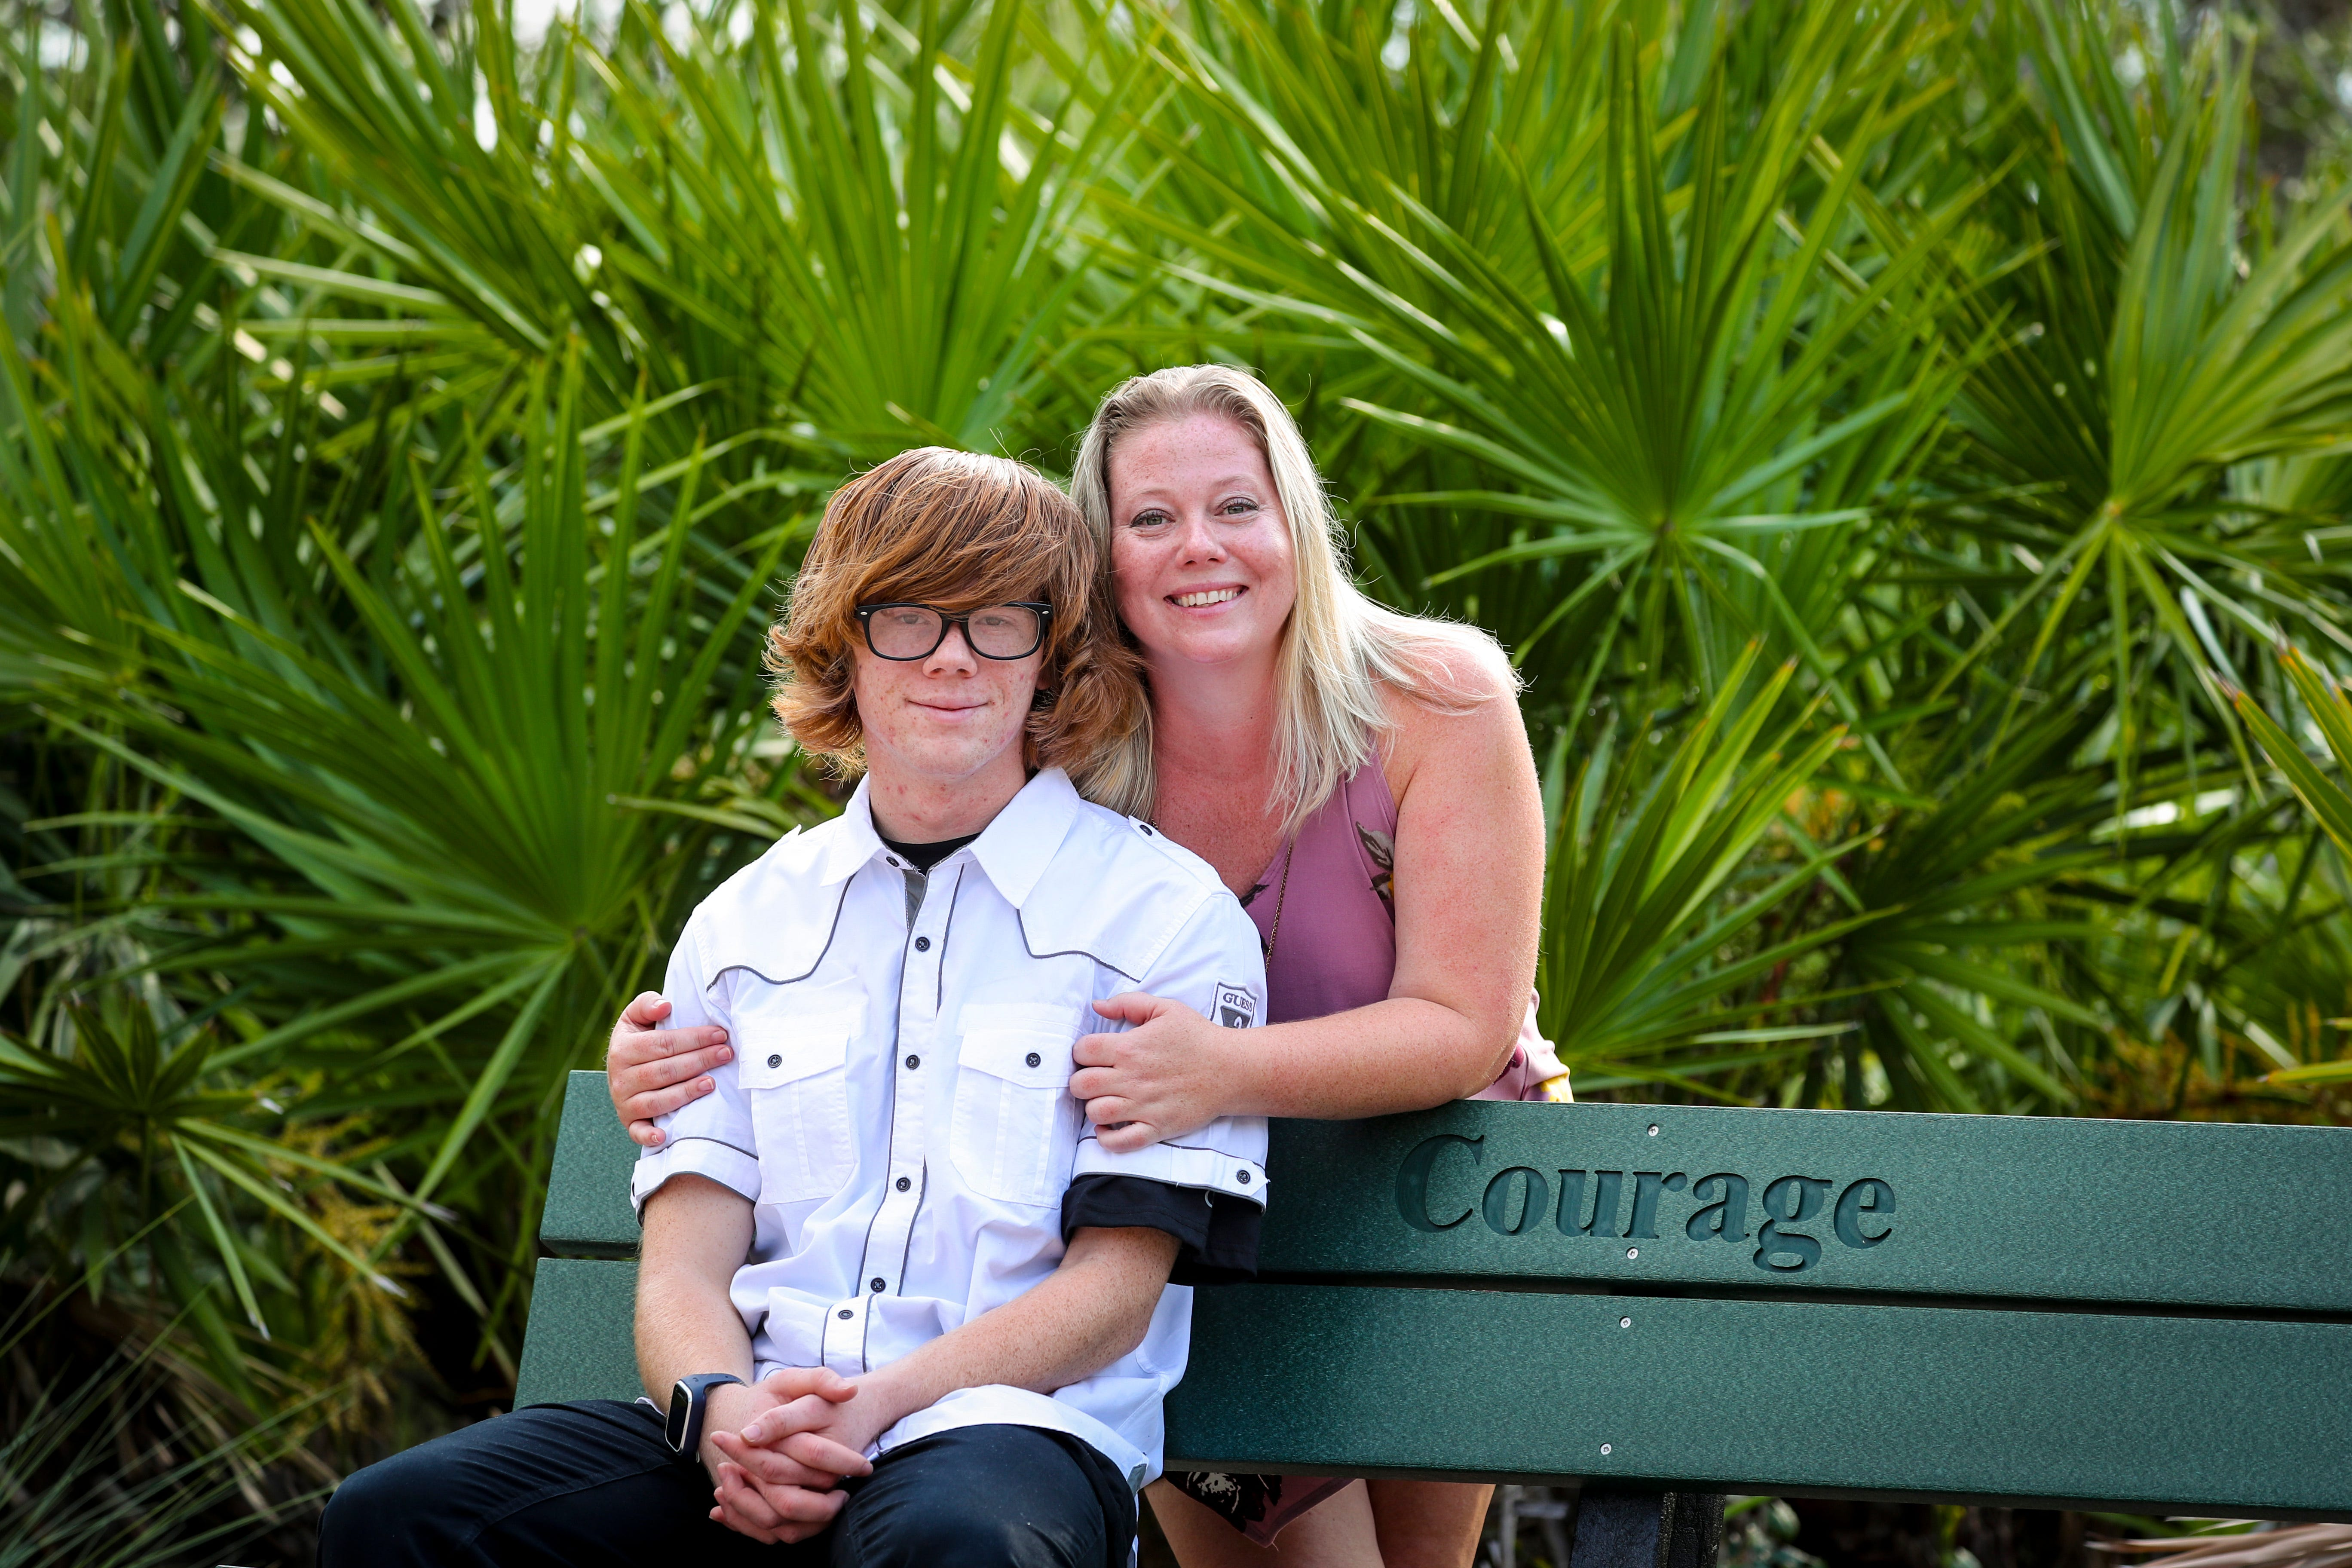 Caleb Caldwell, the 19-year-old from Naples, takes medications to treat symptoms of his bipolar disorder and Asperger's syndrome.  His mother, MellisaCaldwell, has fought to have his symptoms properly diagnosed so they can work through the medication and therapies needed for Caleb to thrive outside the home.